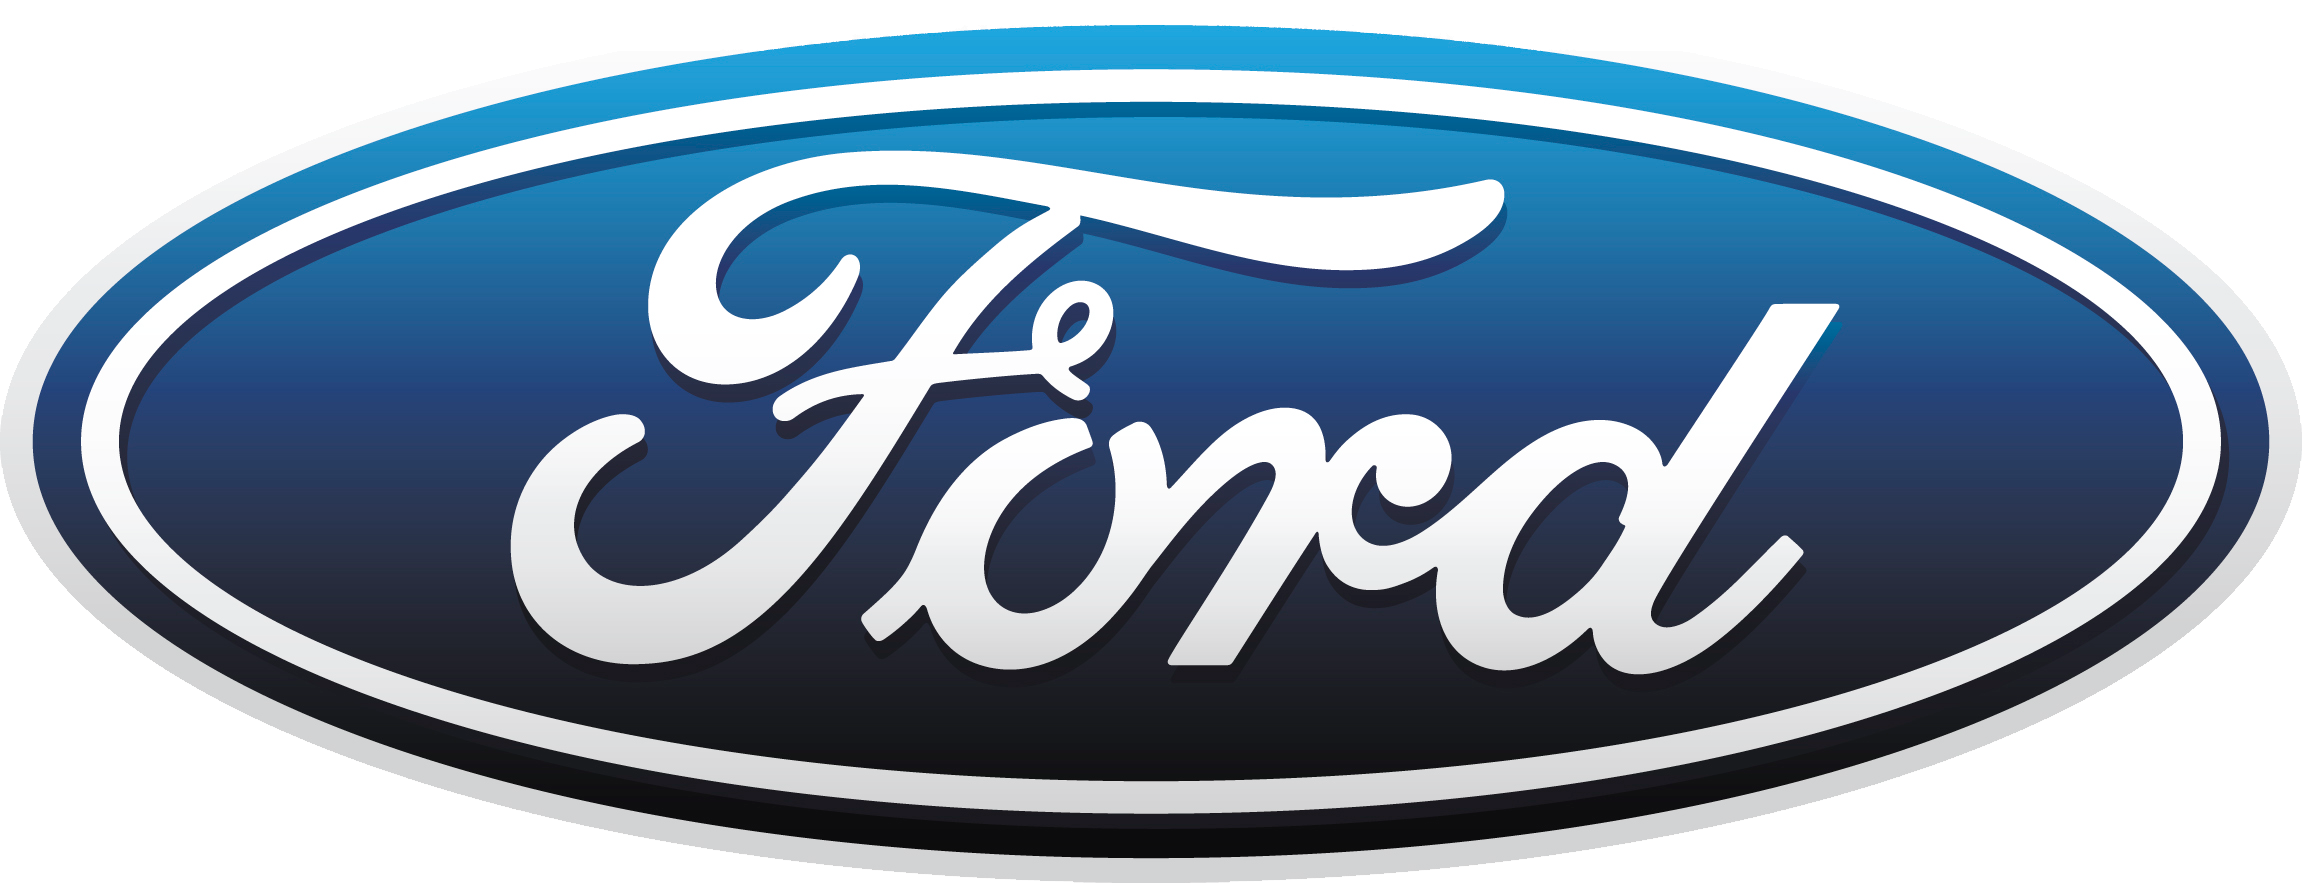 Ford car logo PNG brand image download